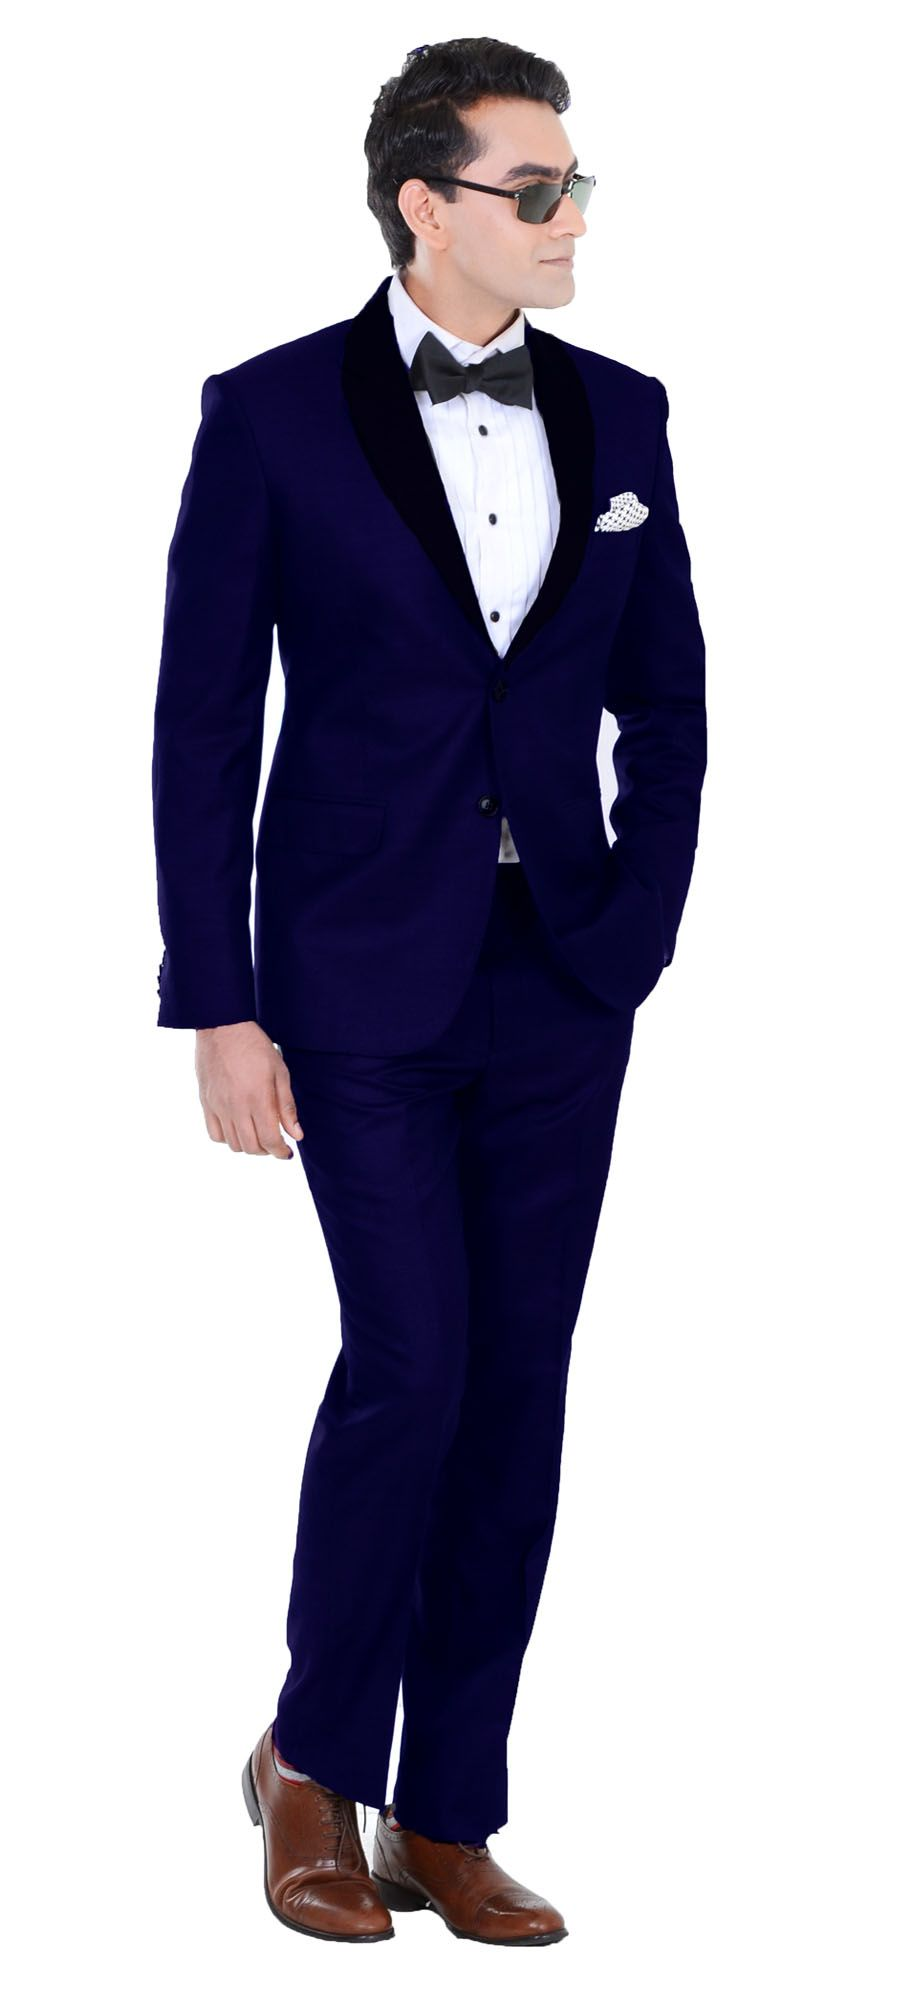 Introducing The Perfect Midnight Blue Tuxedo For Weddings Navy Blues Make This A Show Stopper